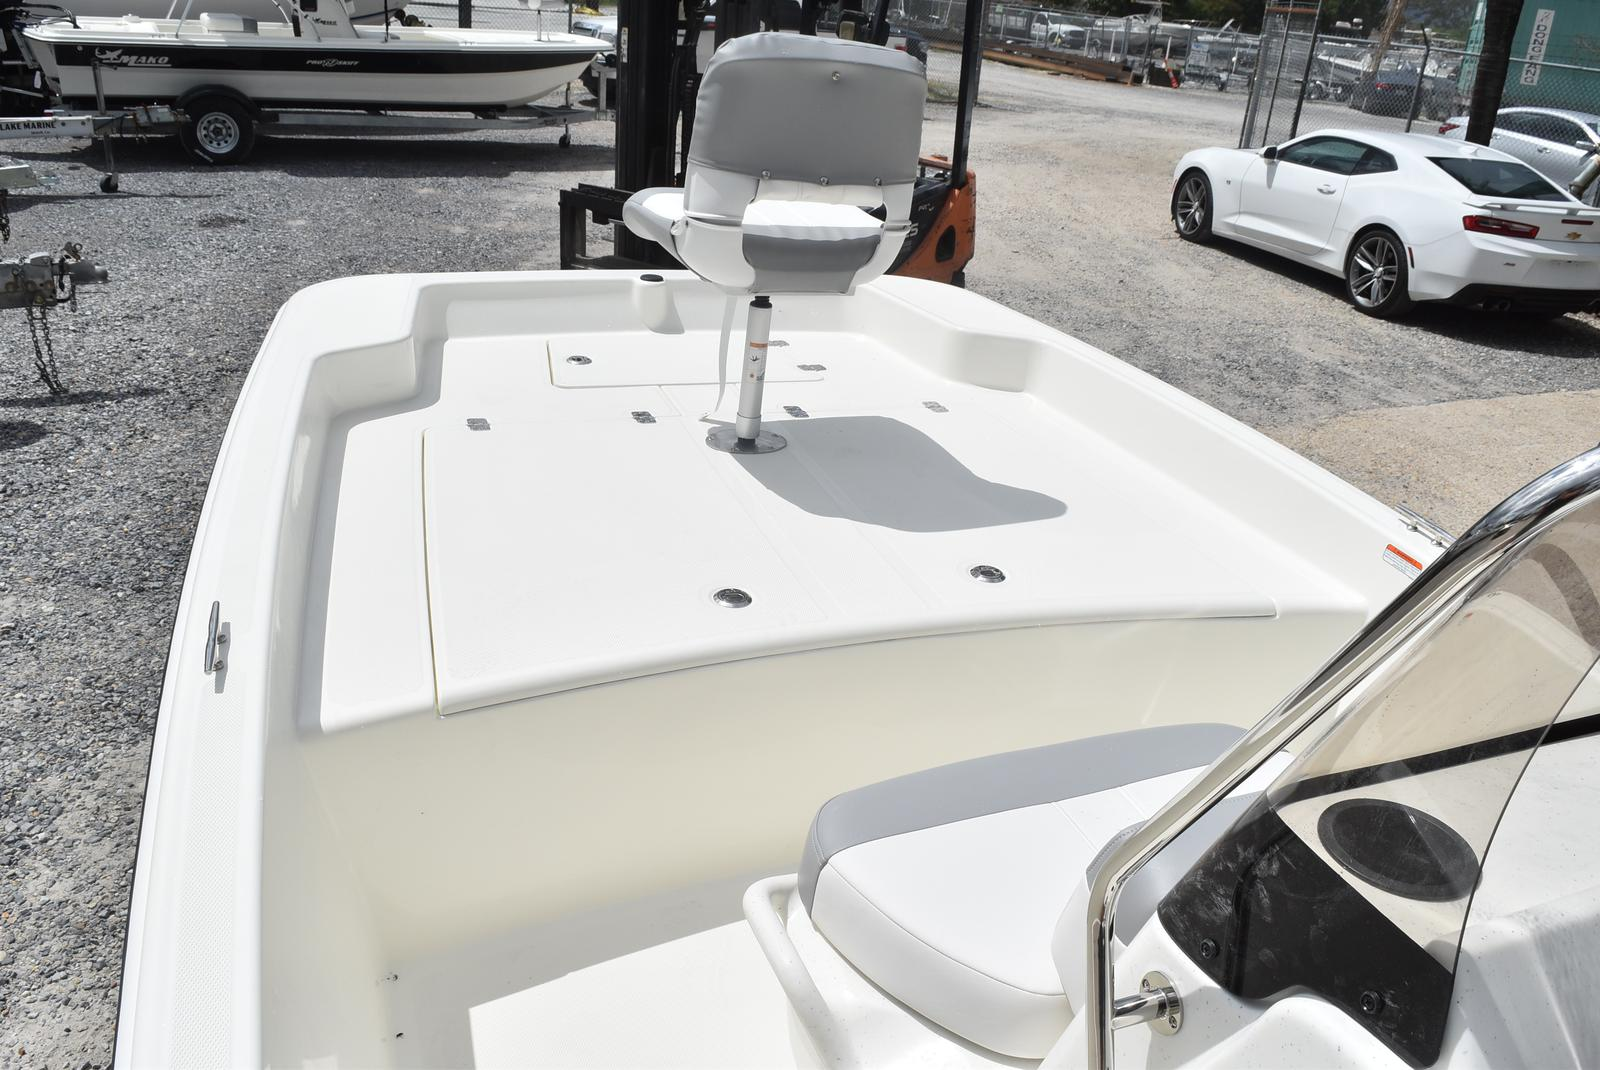 2020 Mako boat for sale, model of the boat is Pro Skiff 17, 75 ELPT & Image # 468 of 702